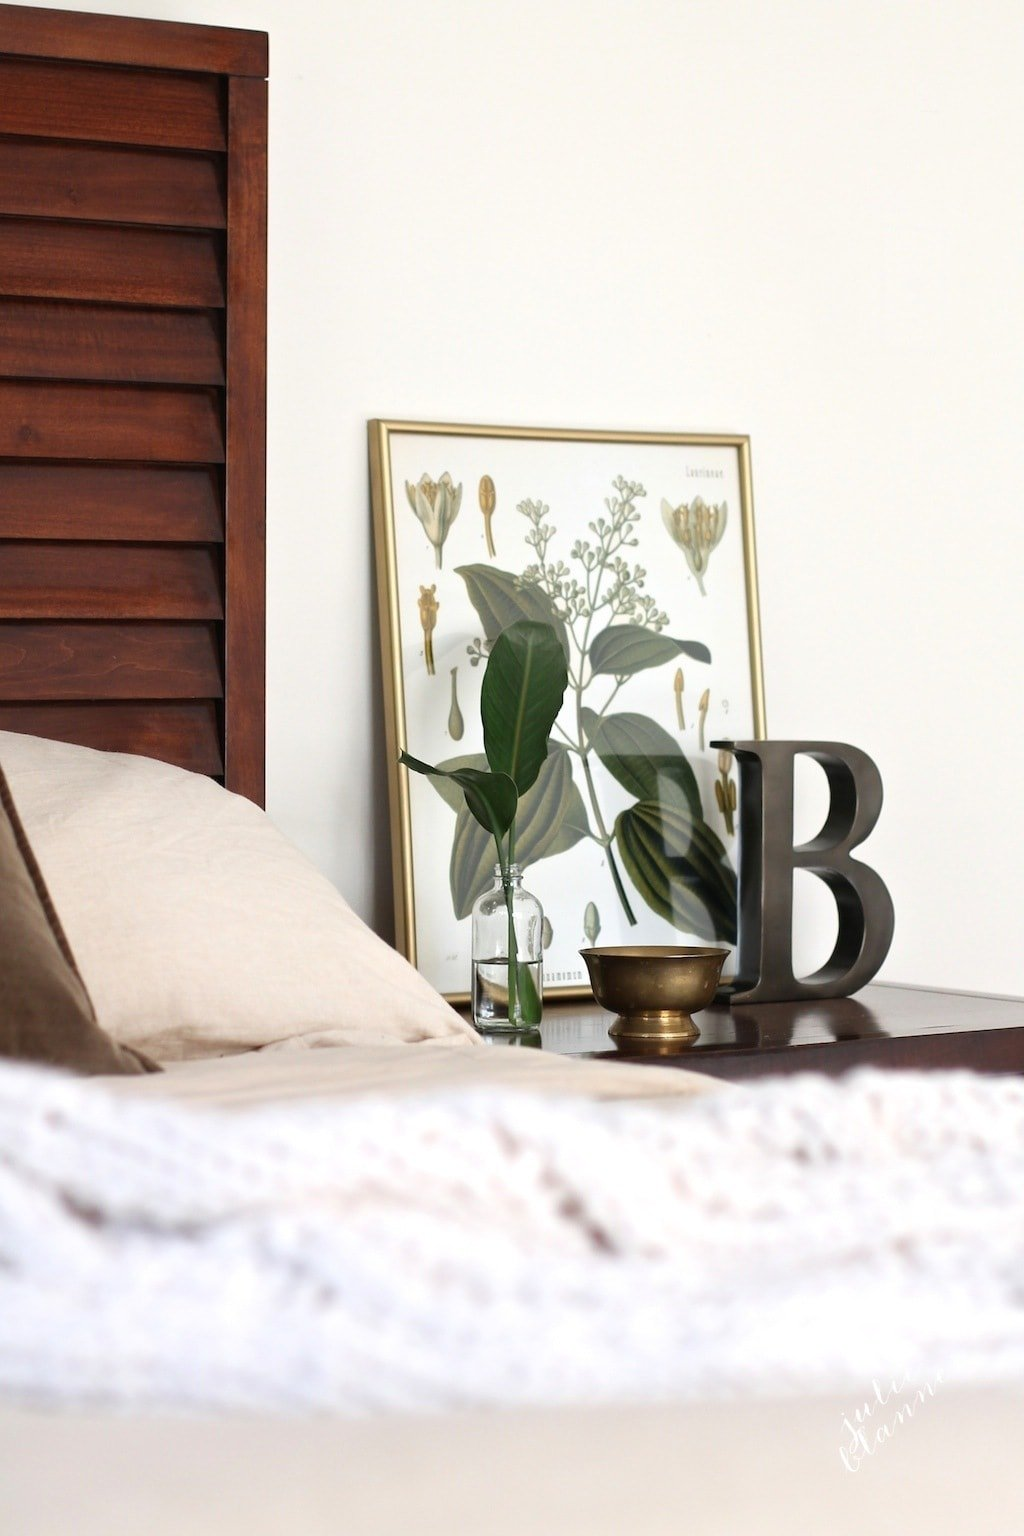 give your bedroom a refresh with these simple tips